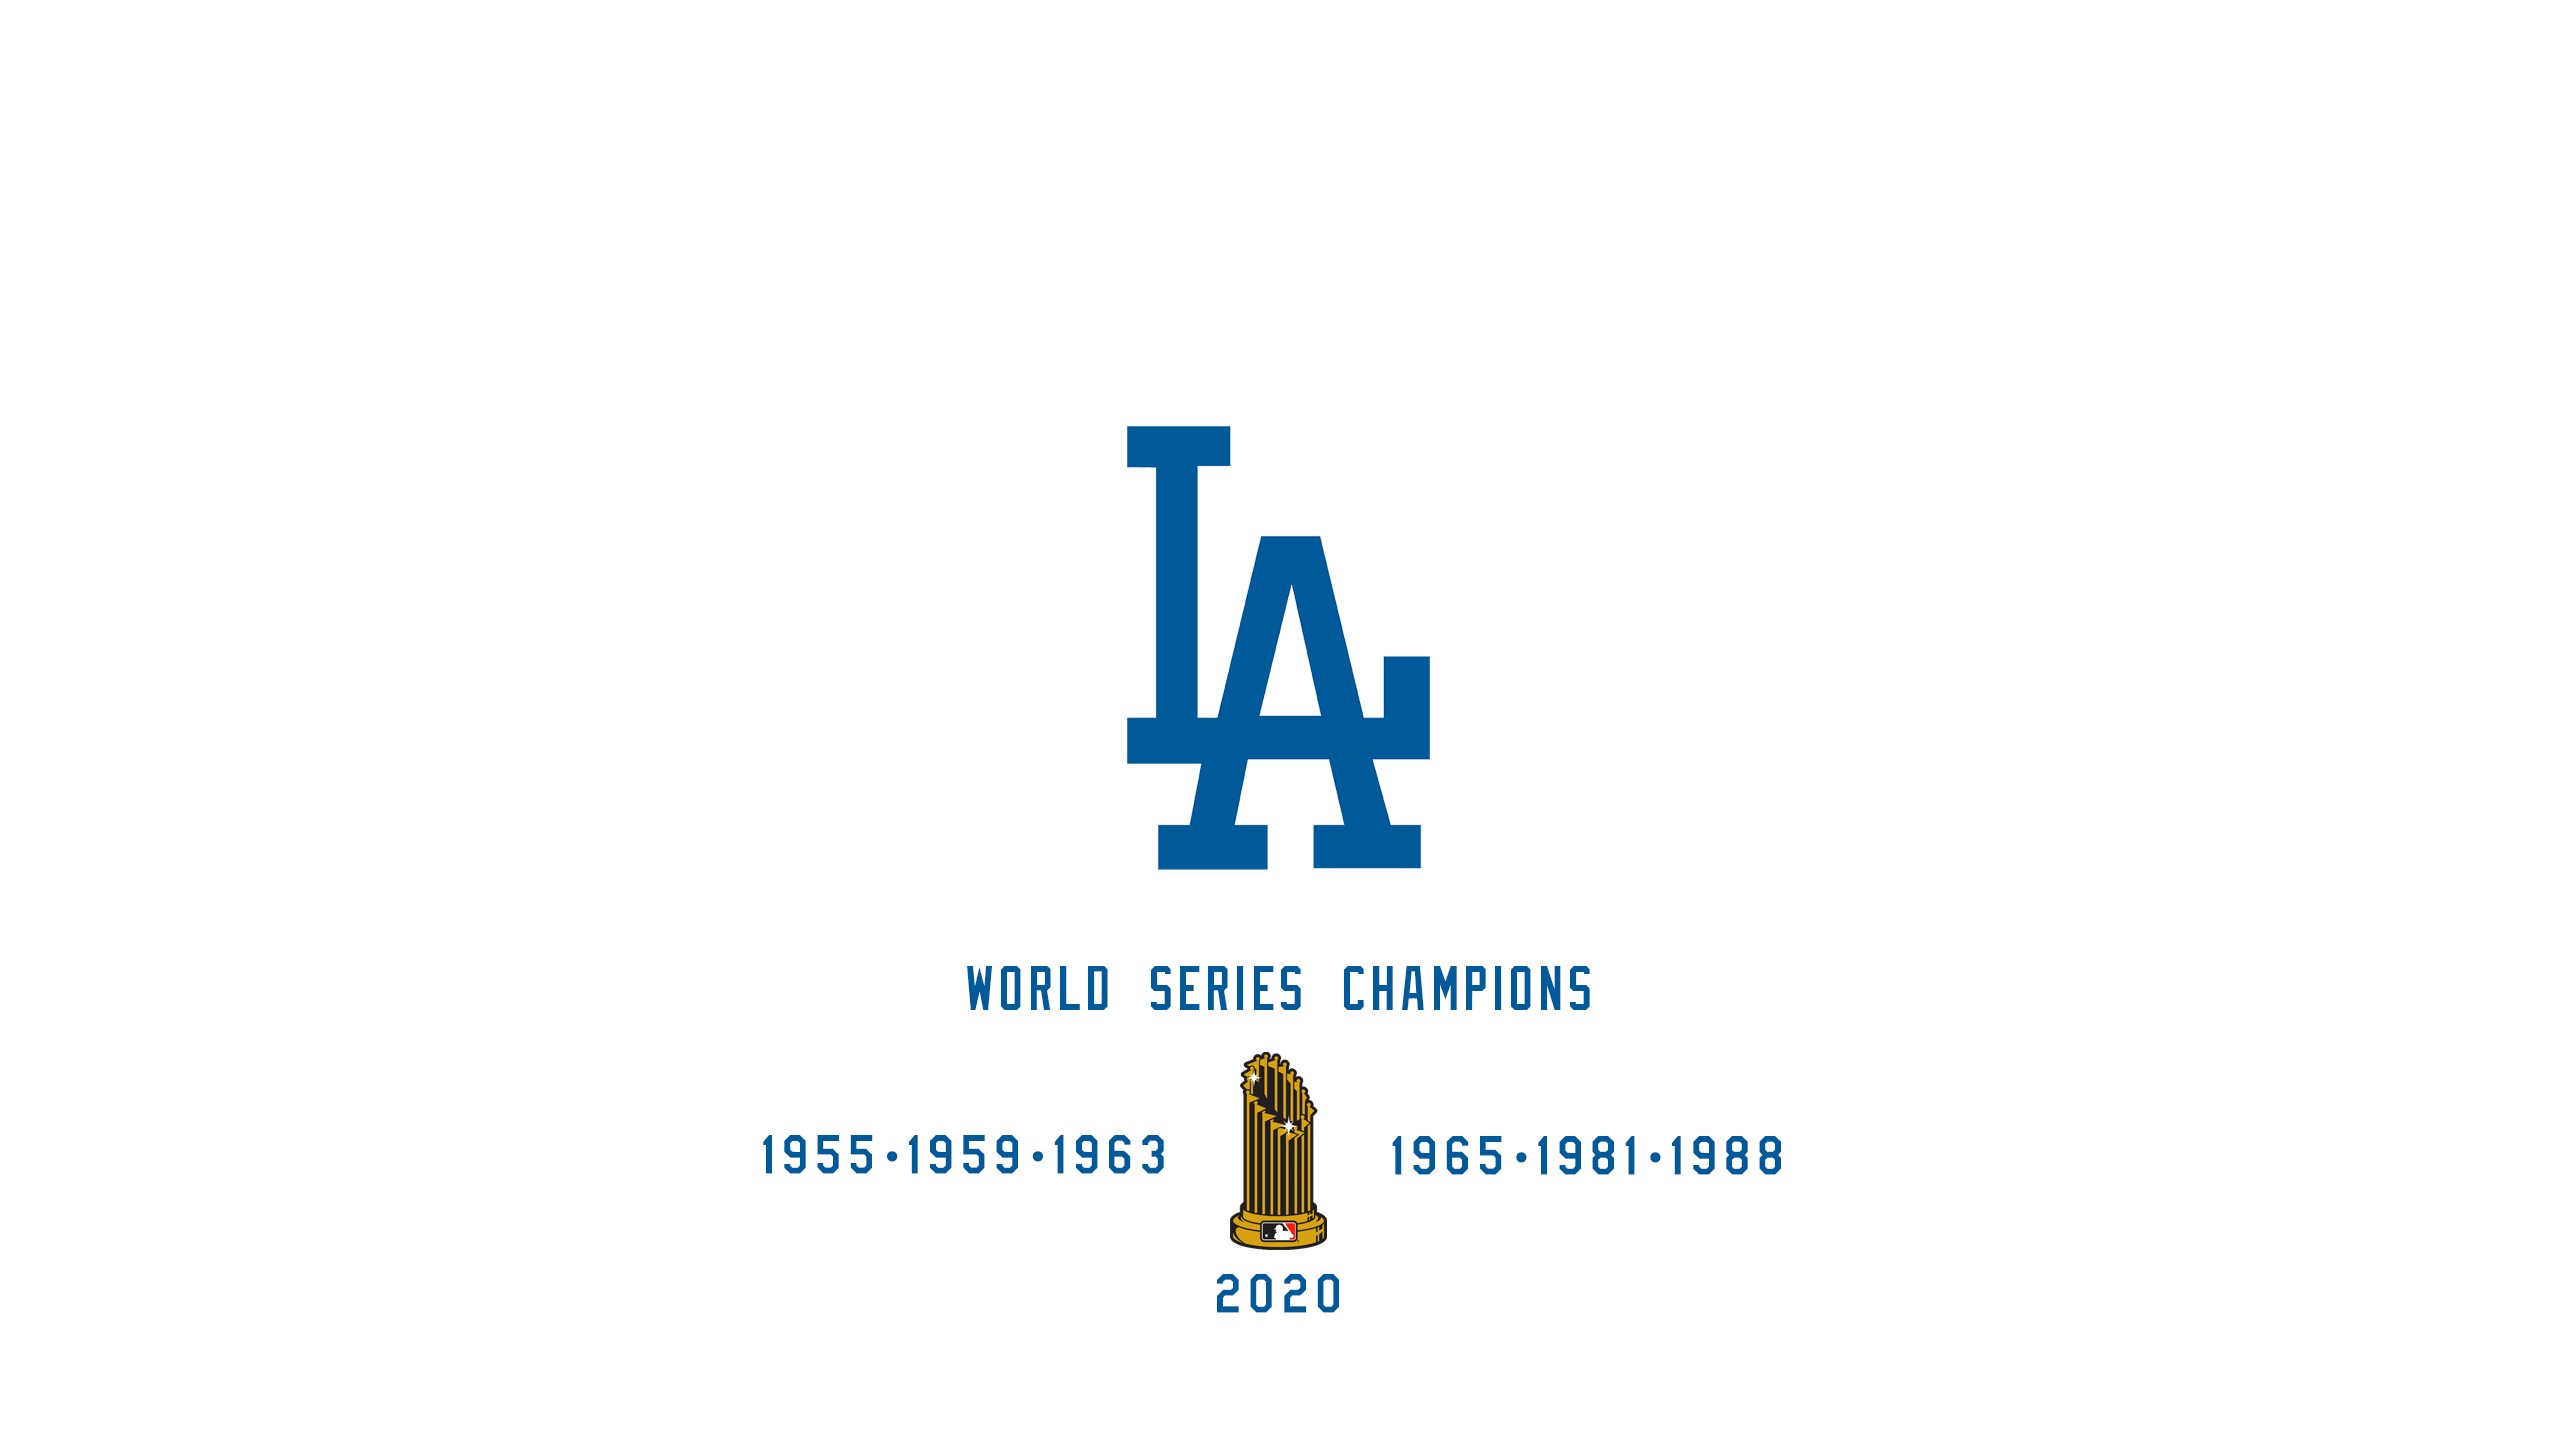 Los Angeles Dodgers - World Series Champs